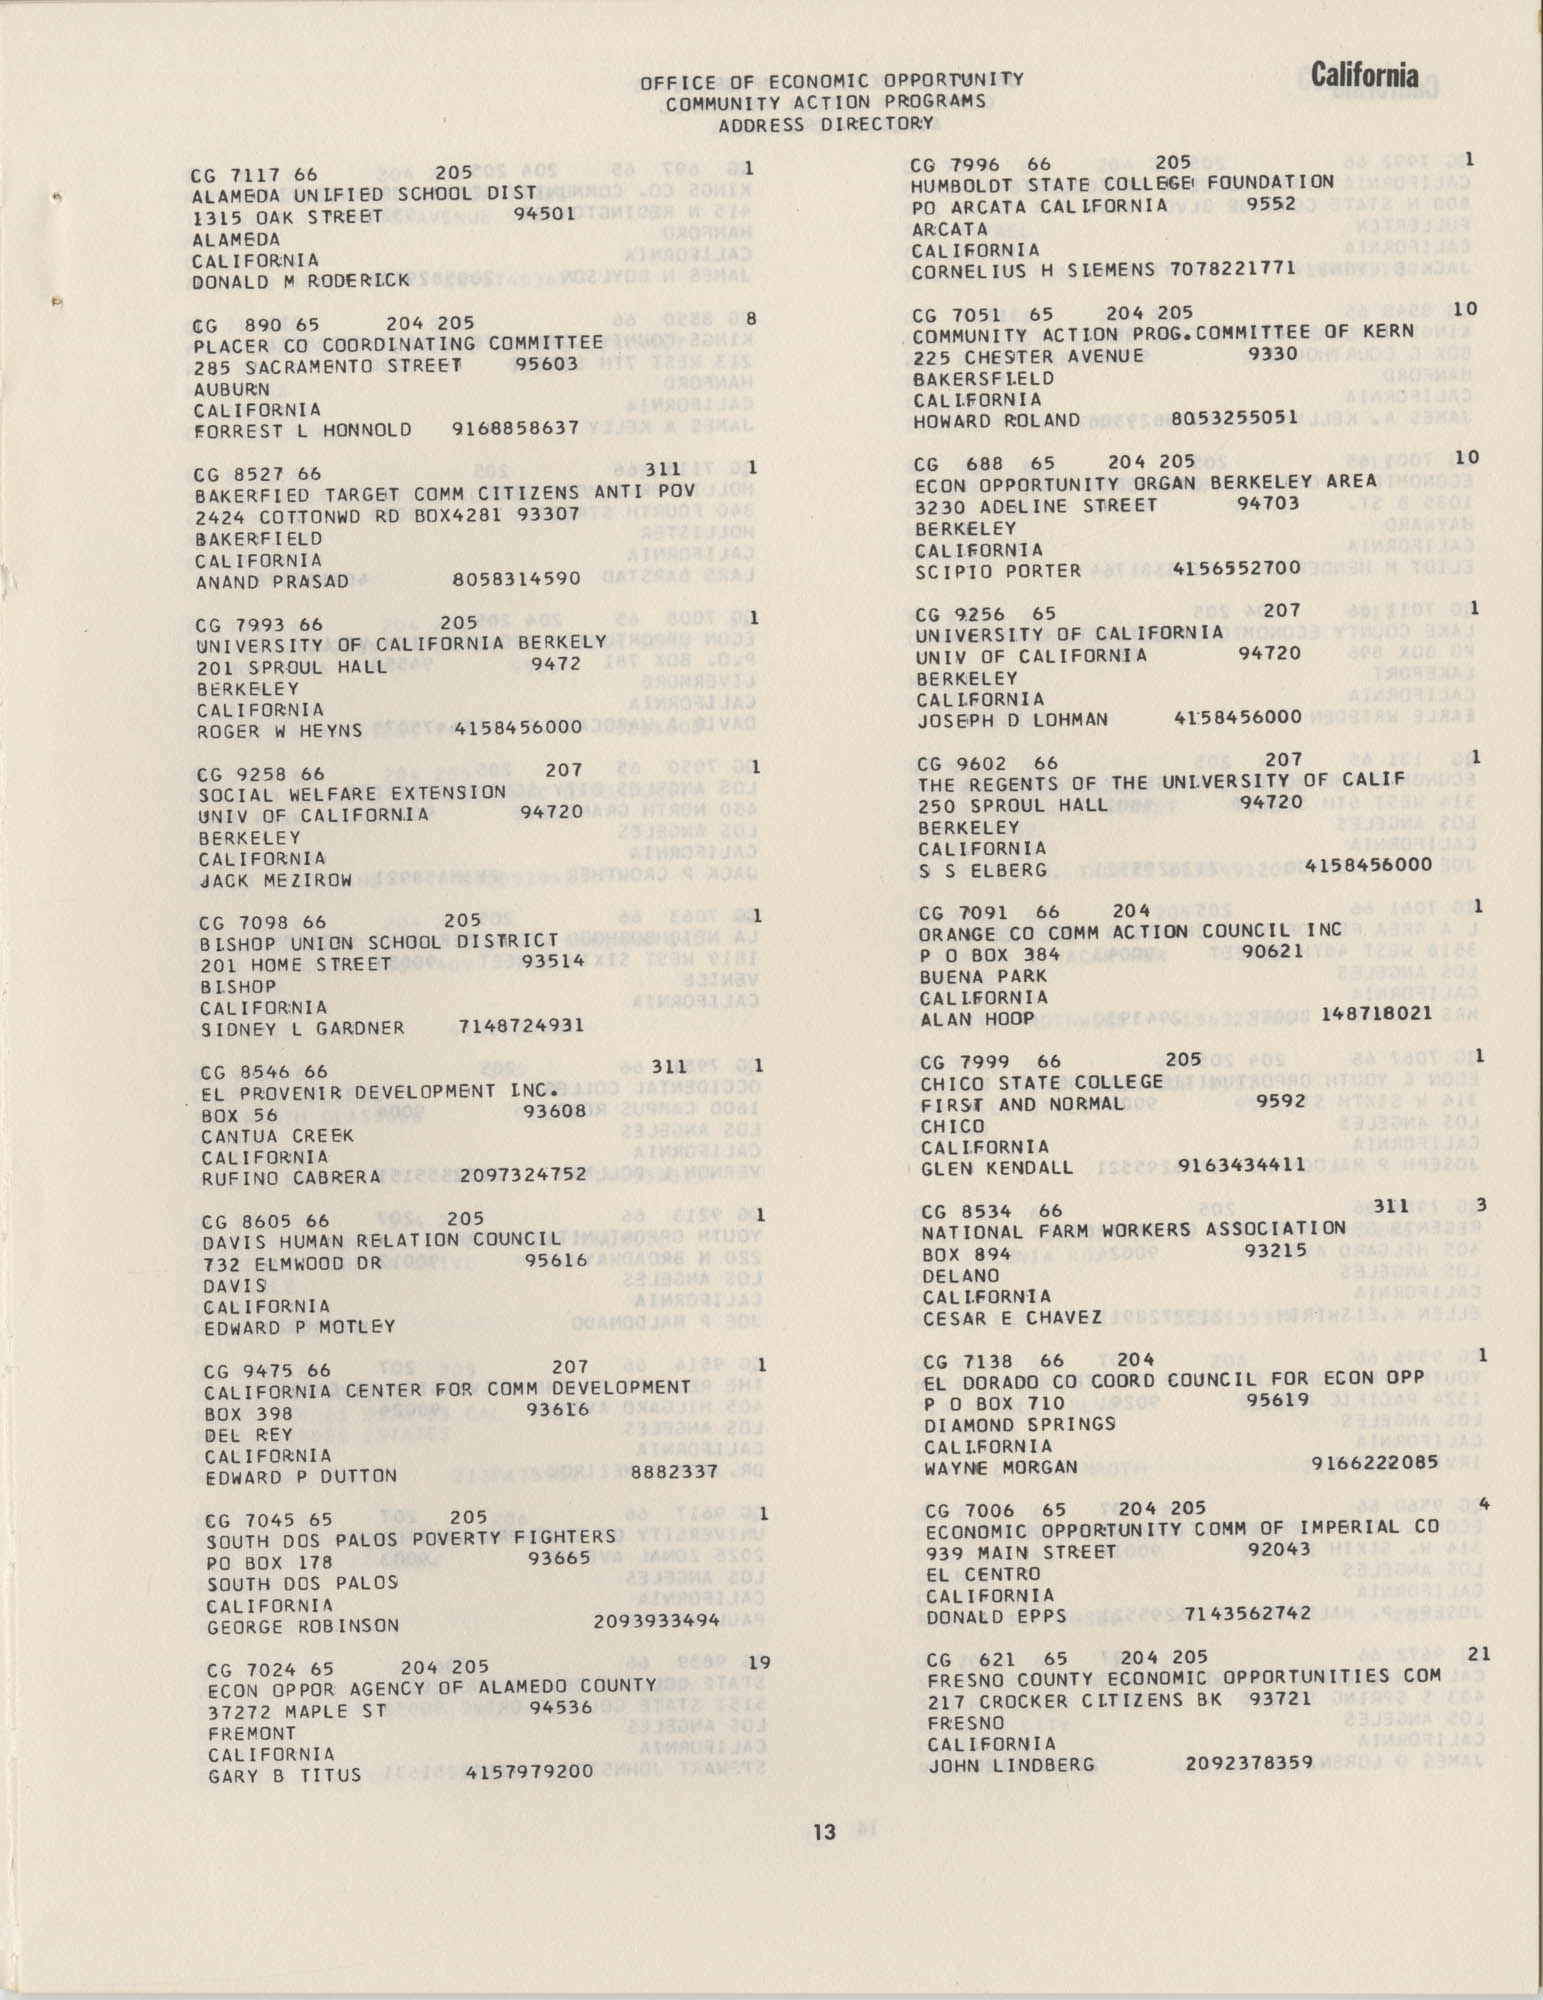 Community Action Programs Directory, June 15, 1966, Page 13